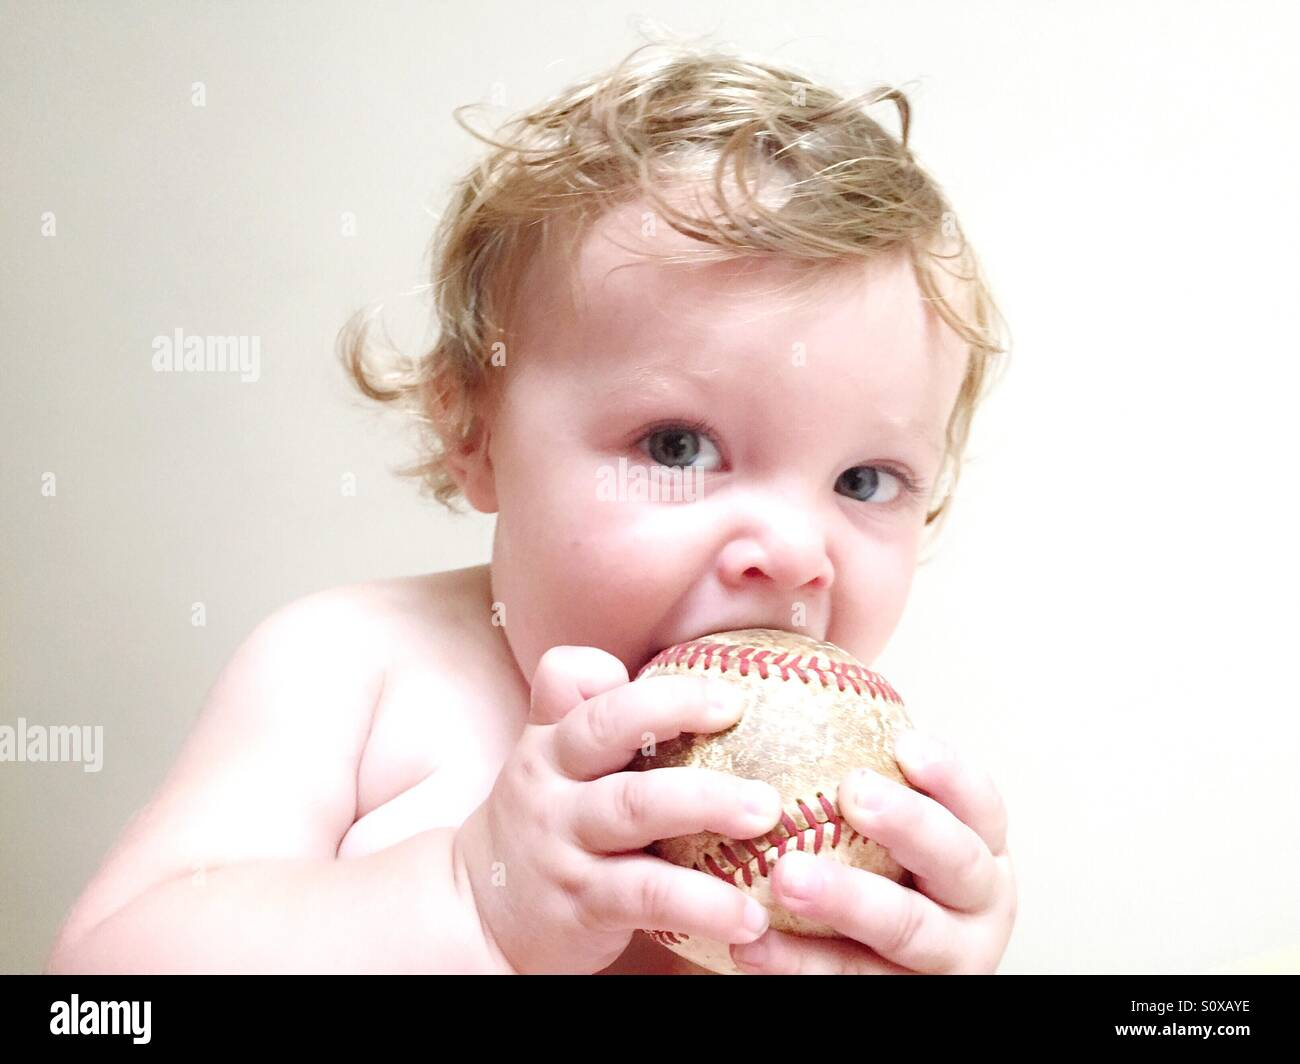 High key image of a baby boy chewing on an old baseball - Stock Image